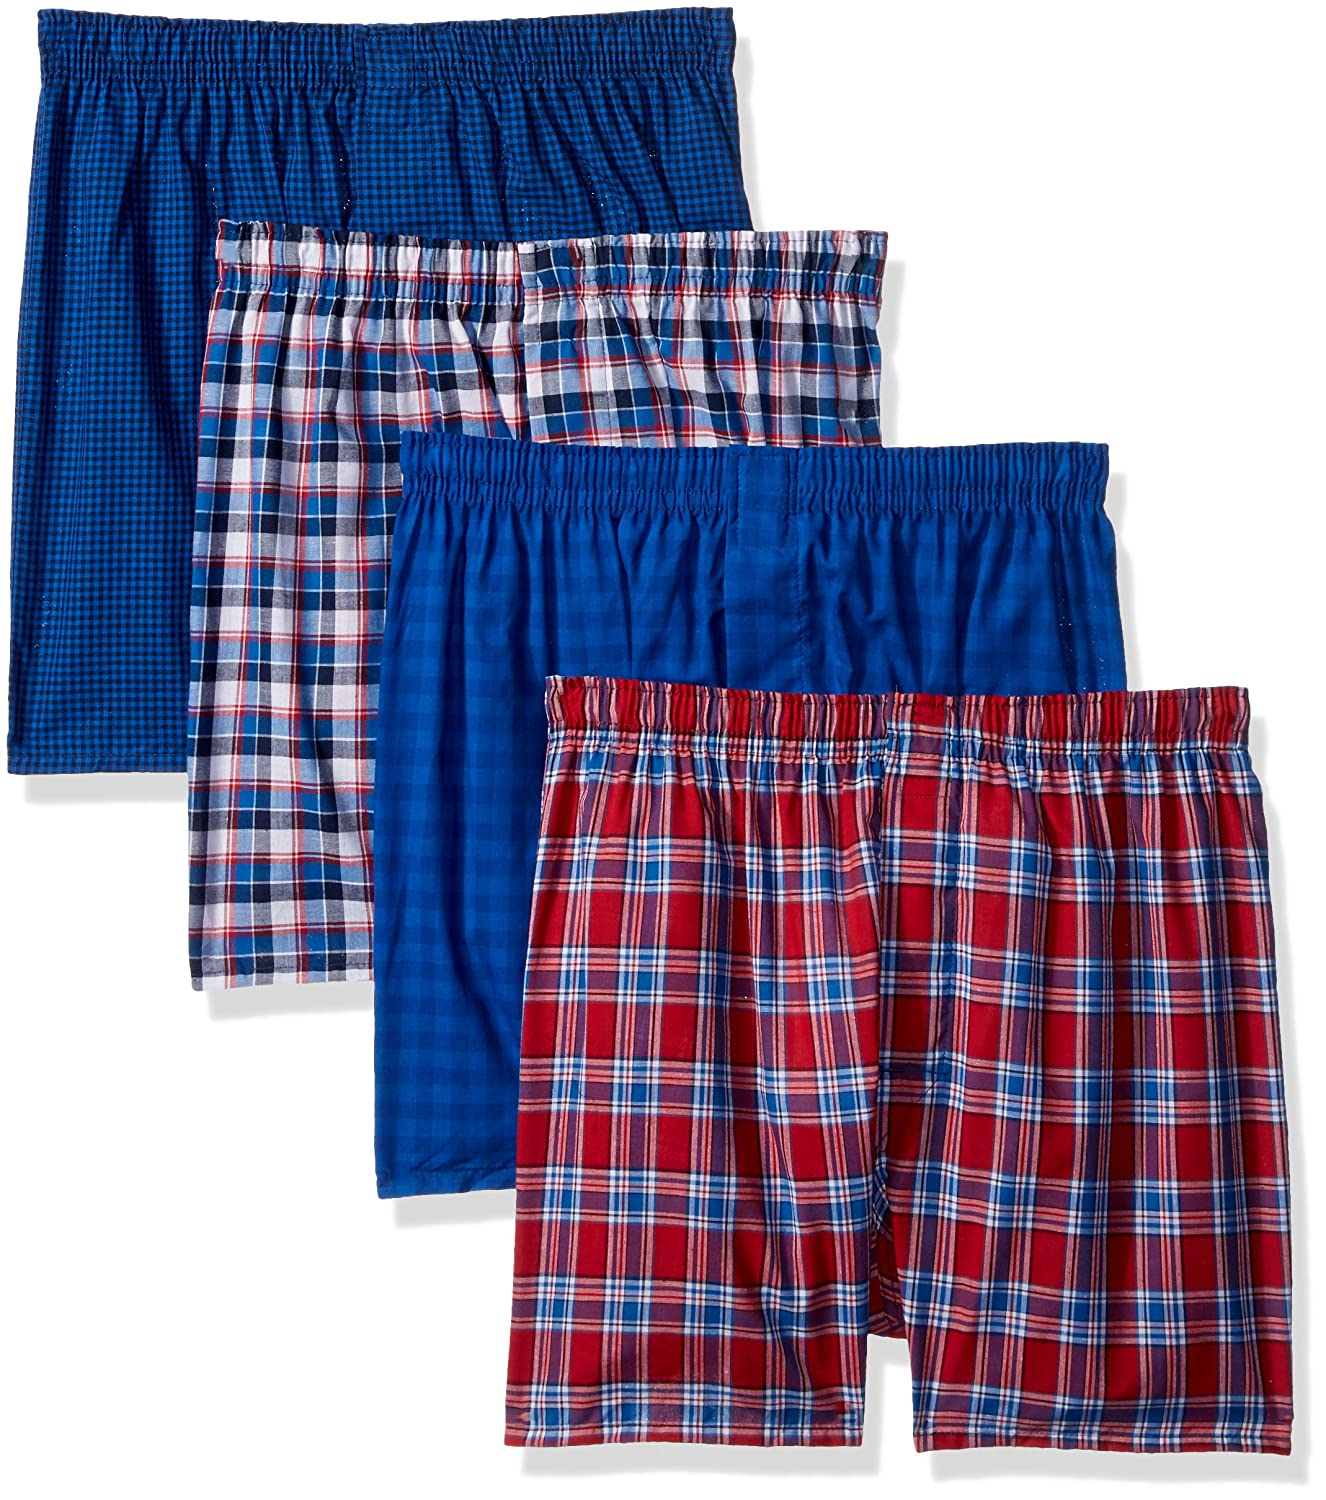 Hanes Men's 4-Pack Comfortblend Woven Boxers with Freshiq MBBXC4